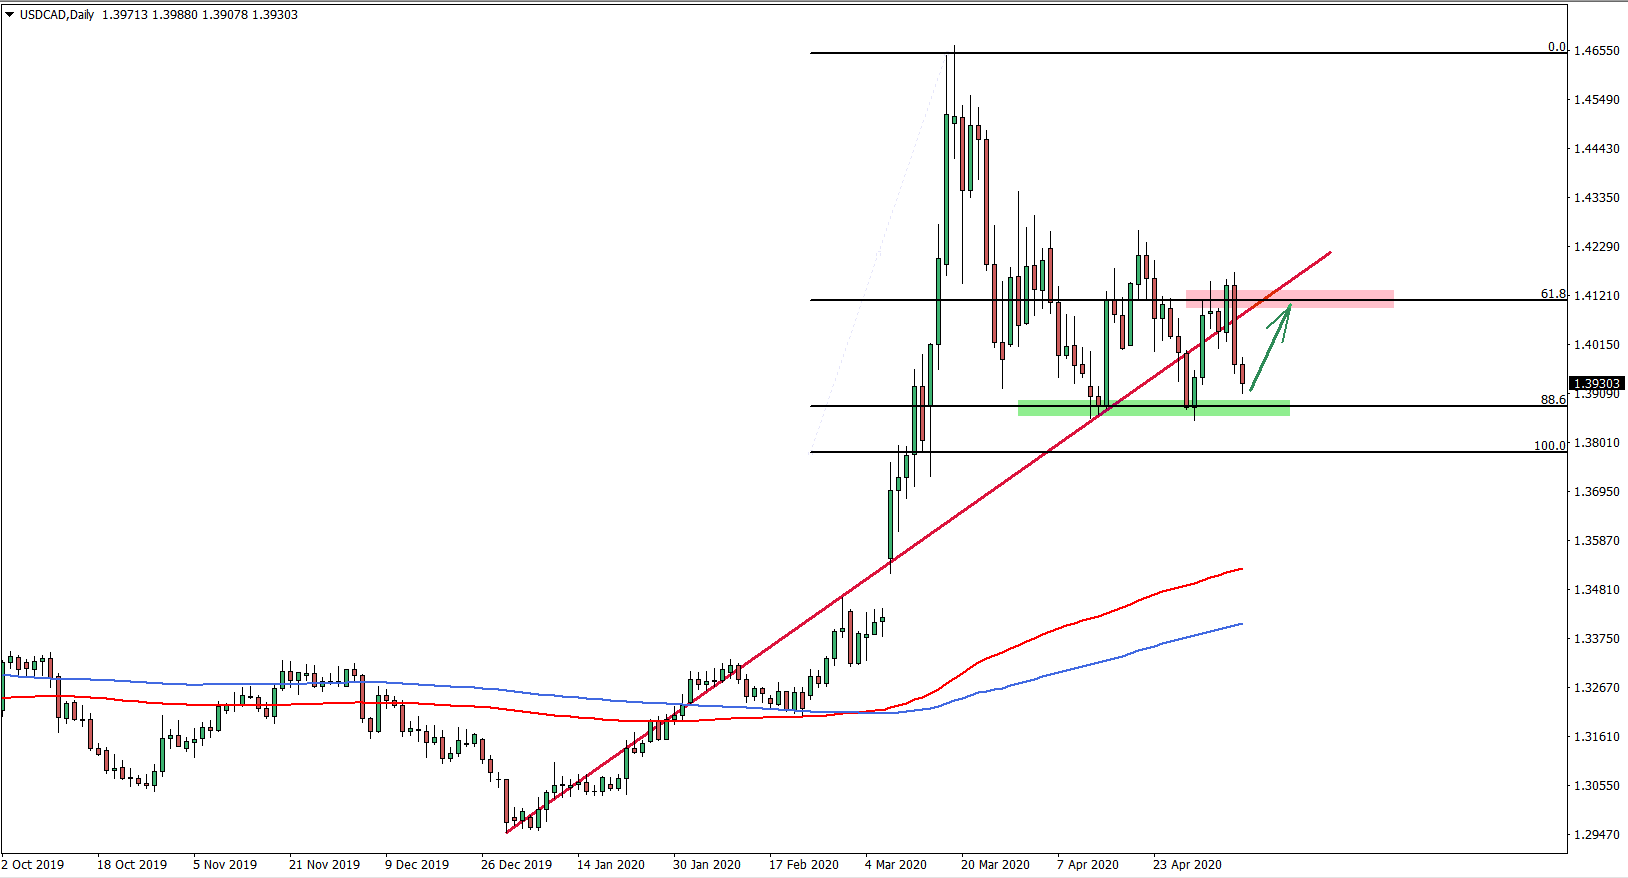 USDCAD 1D Chart May 8th 2020